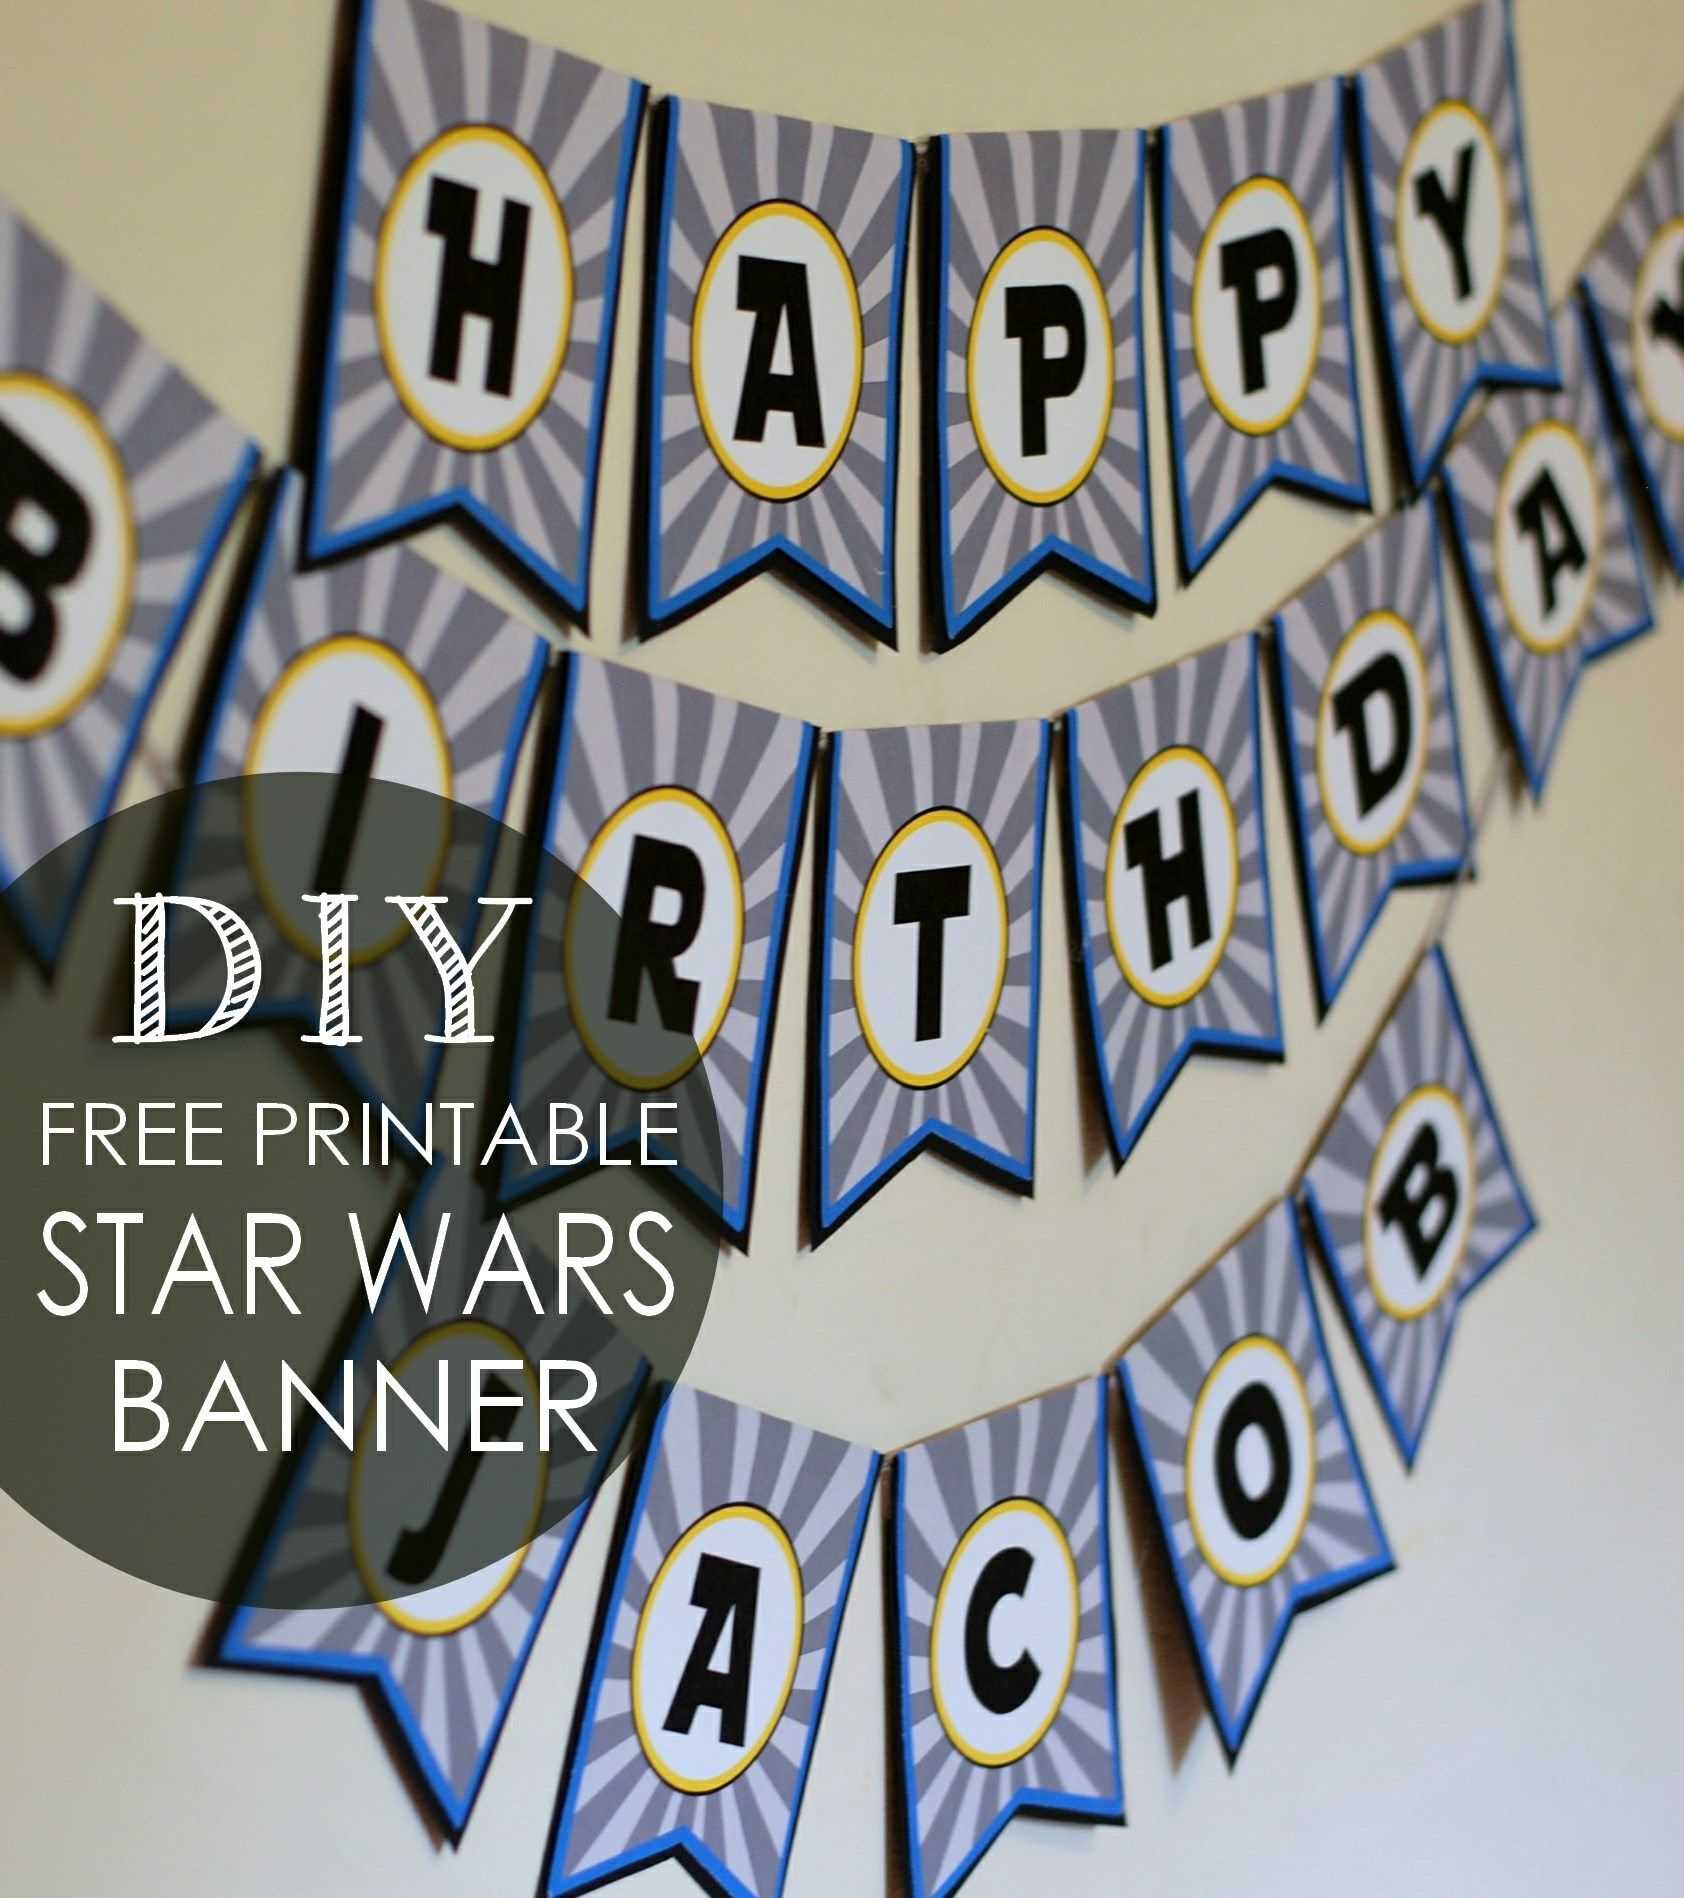 diy star wars birthday banner + free printables  batman party